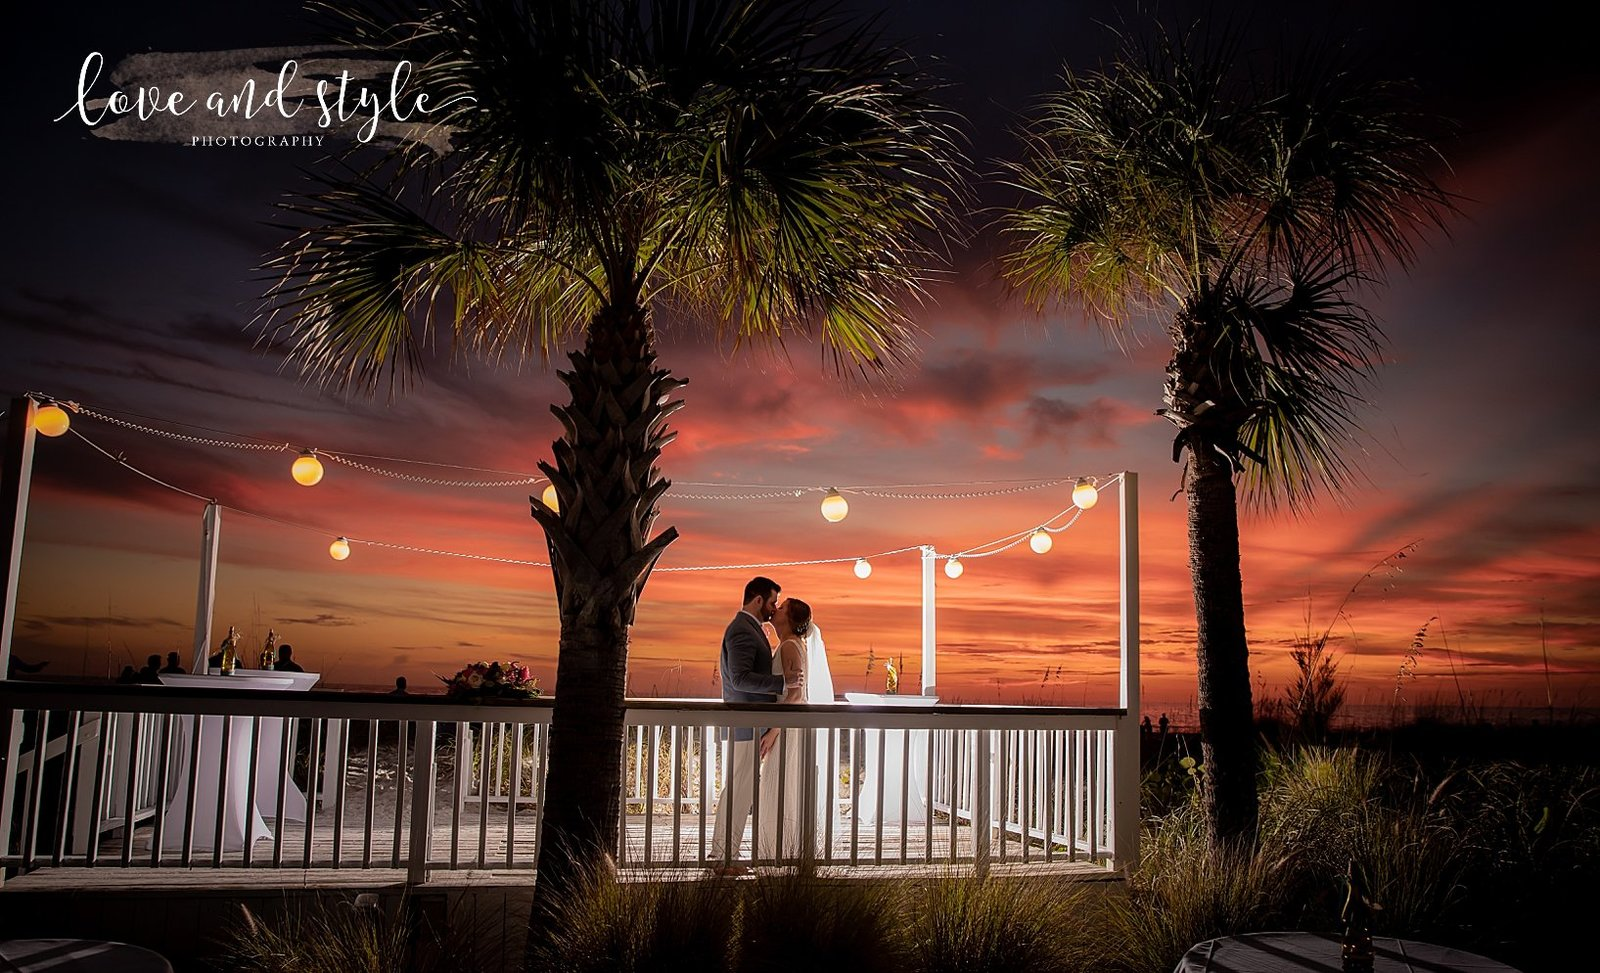 Bride and Groom backlit at The Sandbar Restaurant on Anna Maria Island at sunset